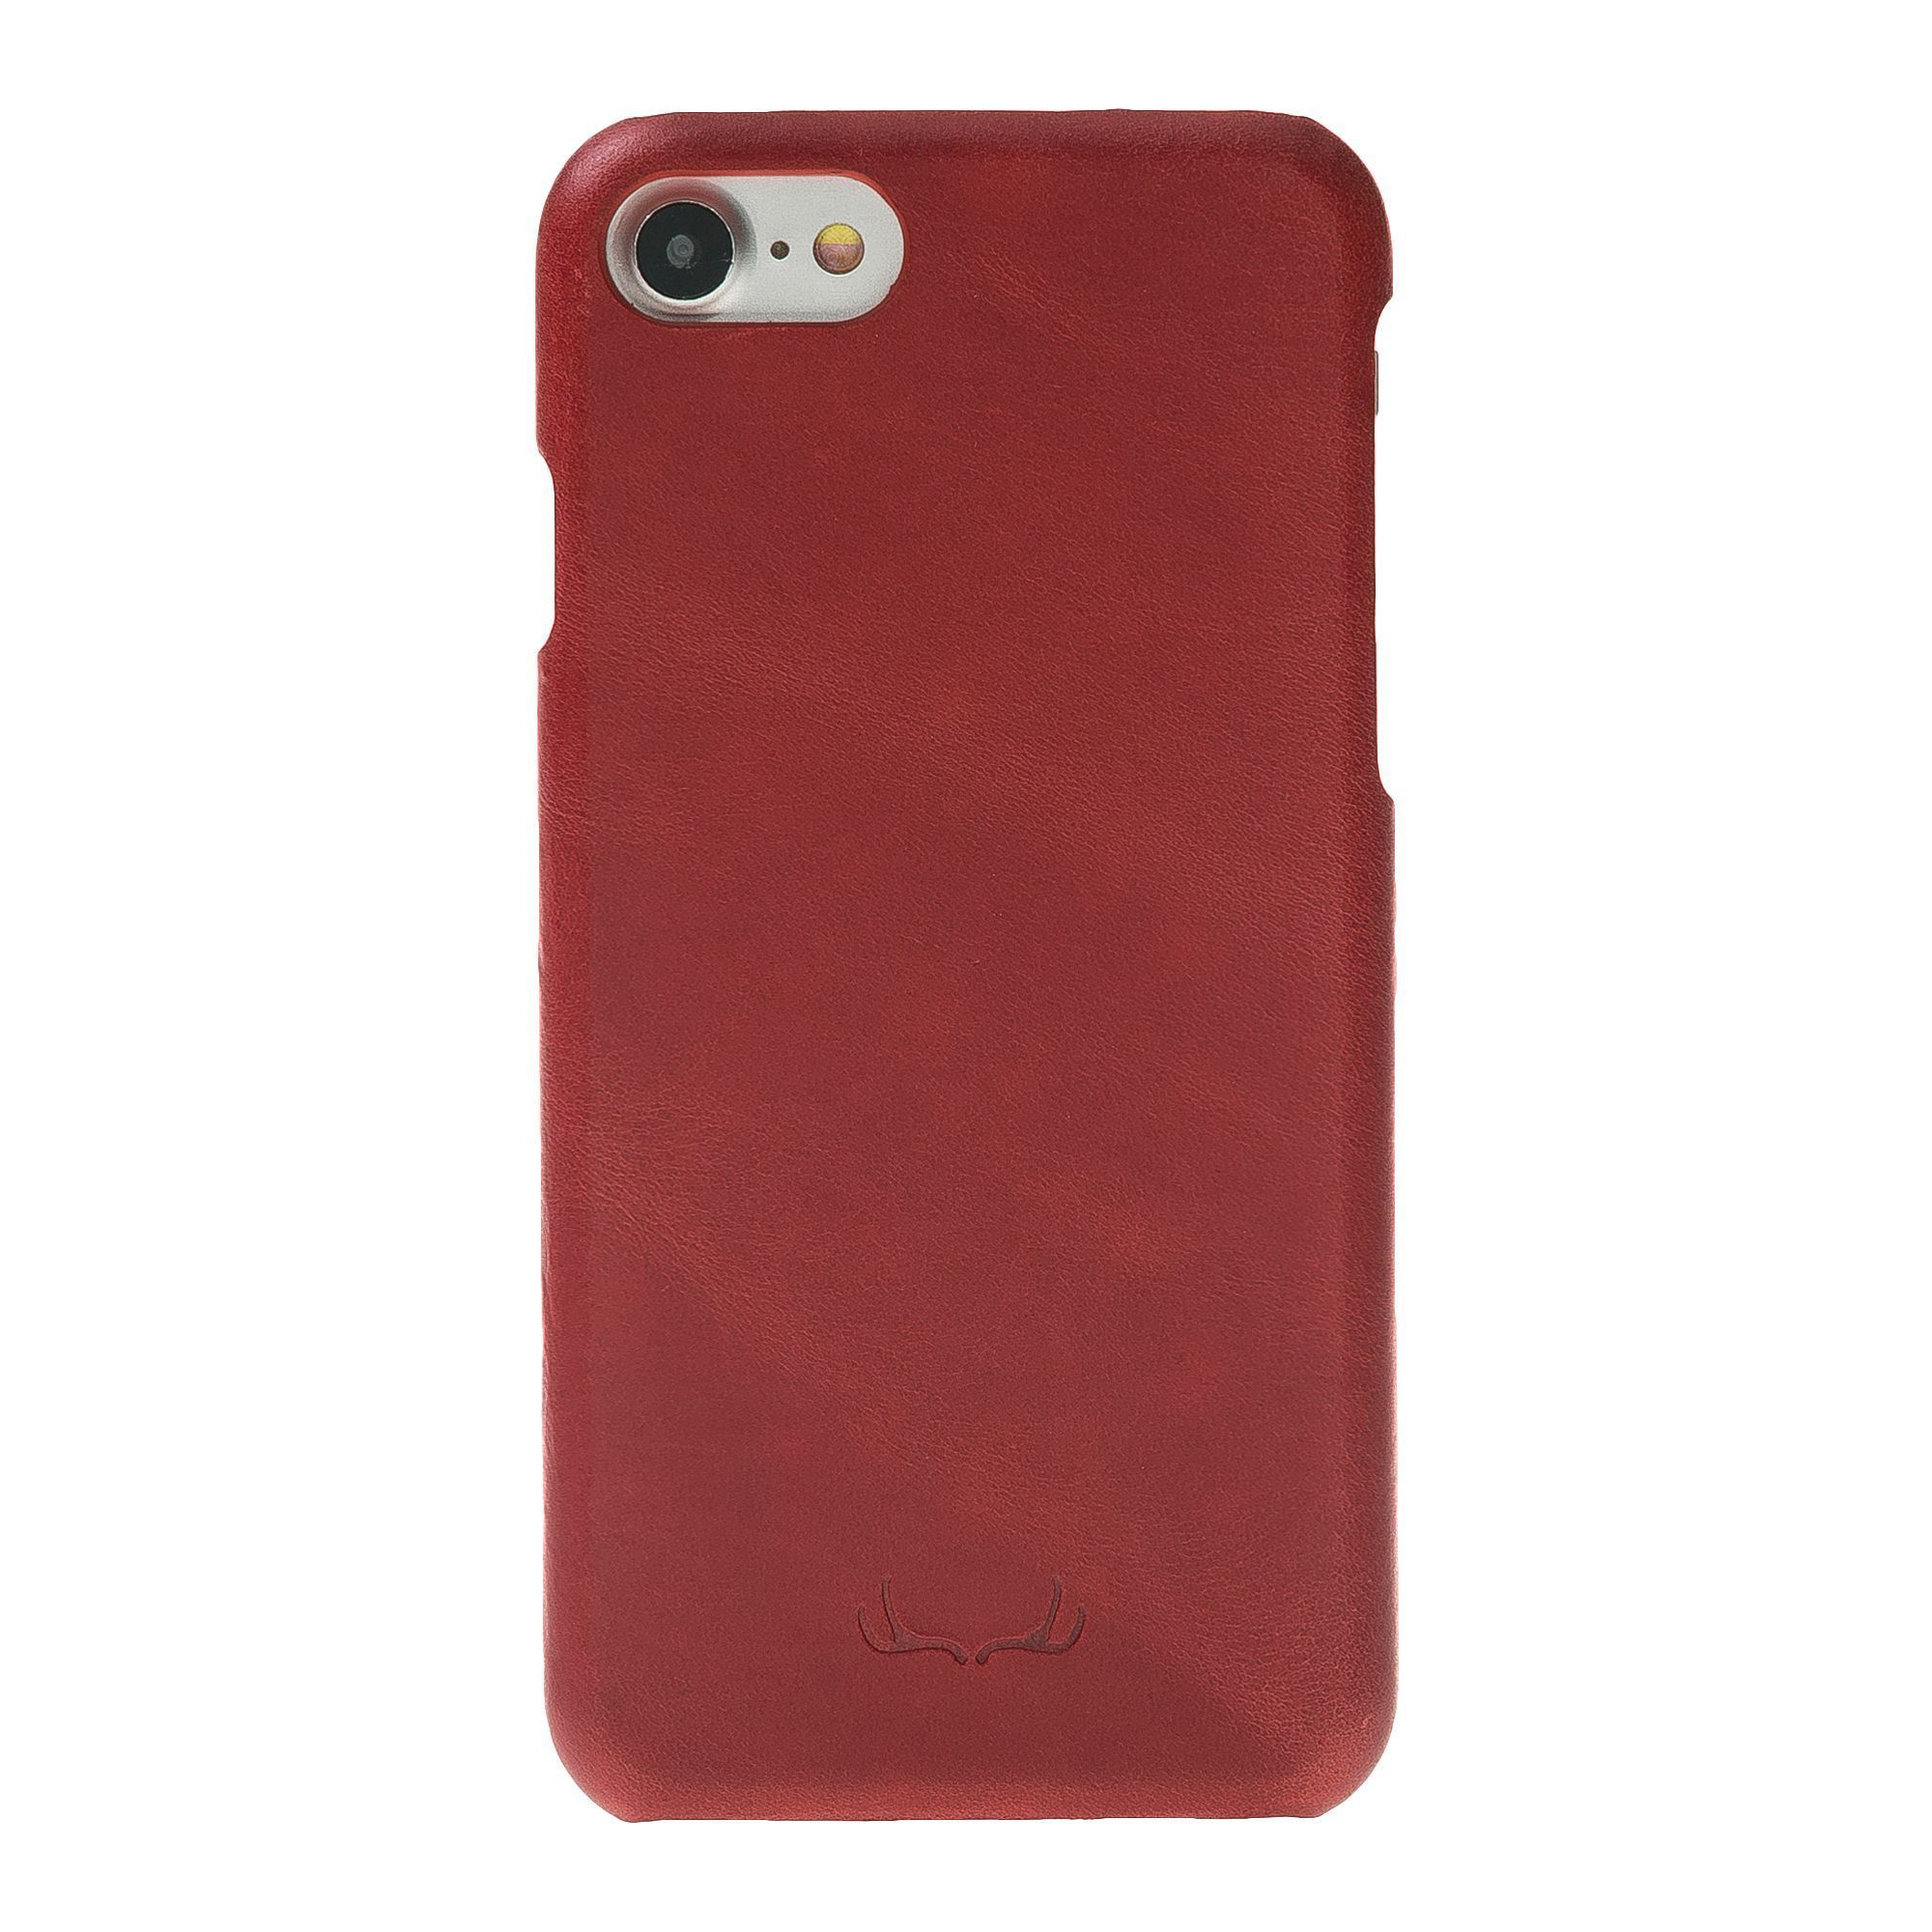 BNT Ultimate Jacket Leather Cases - Crazy - iPhone 7/8 - Red